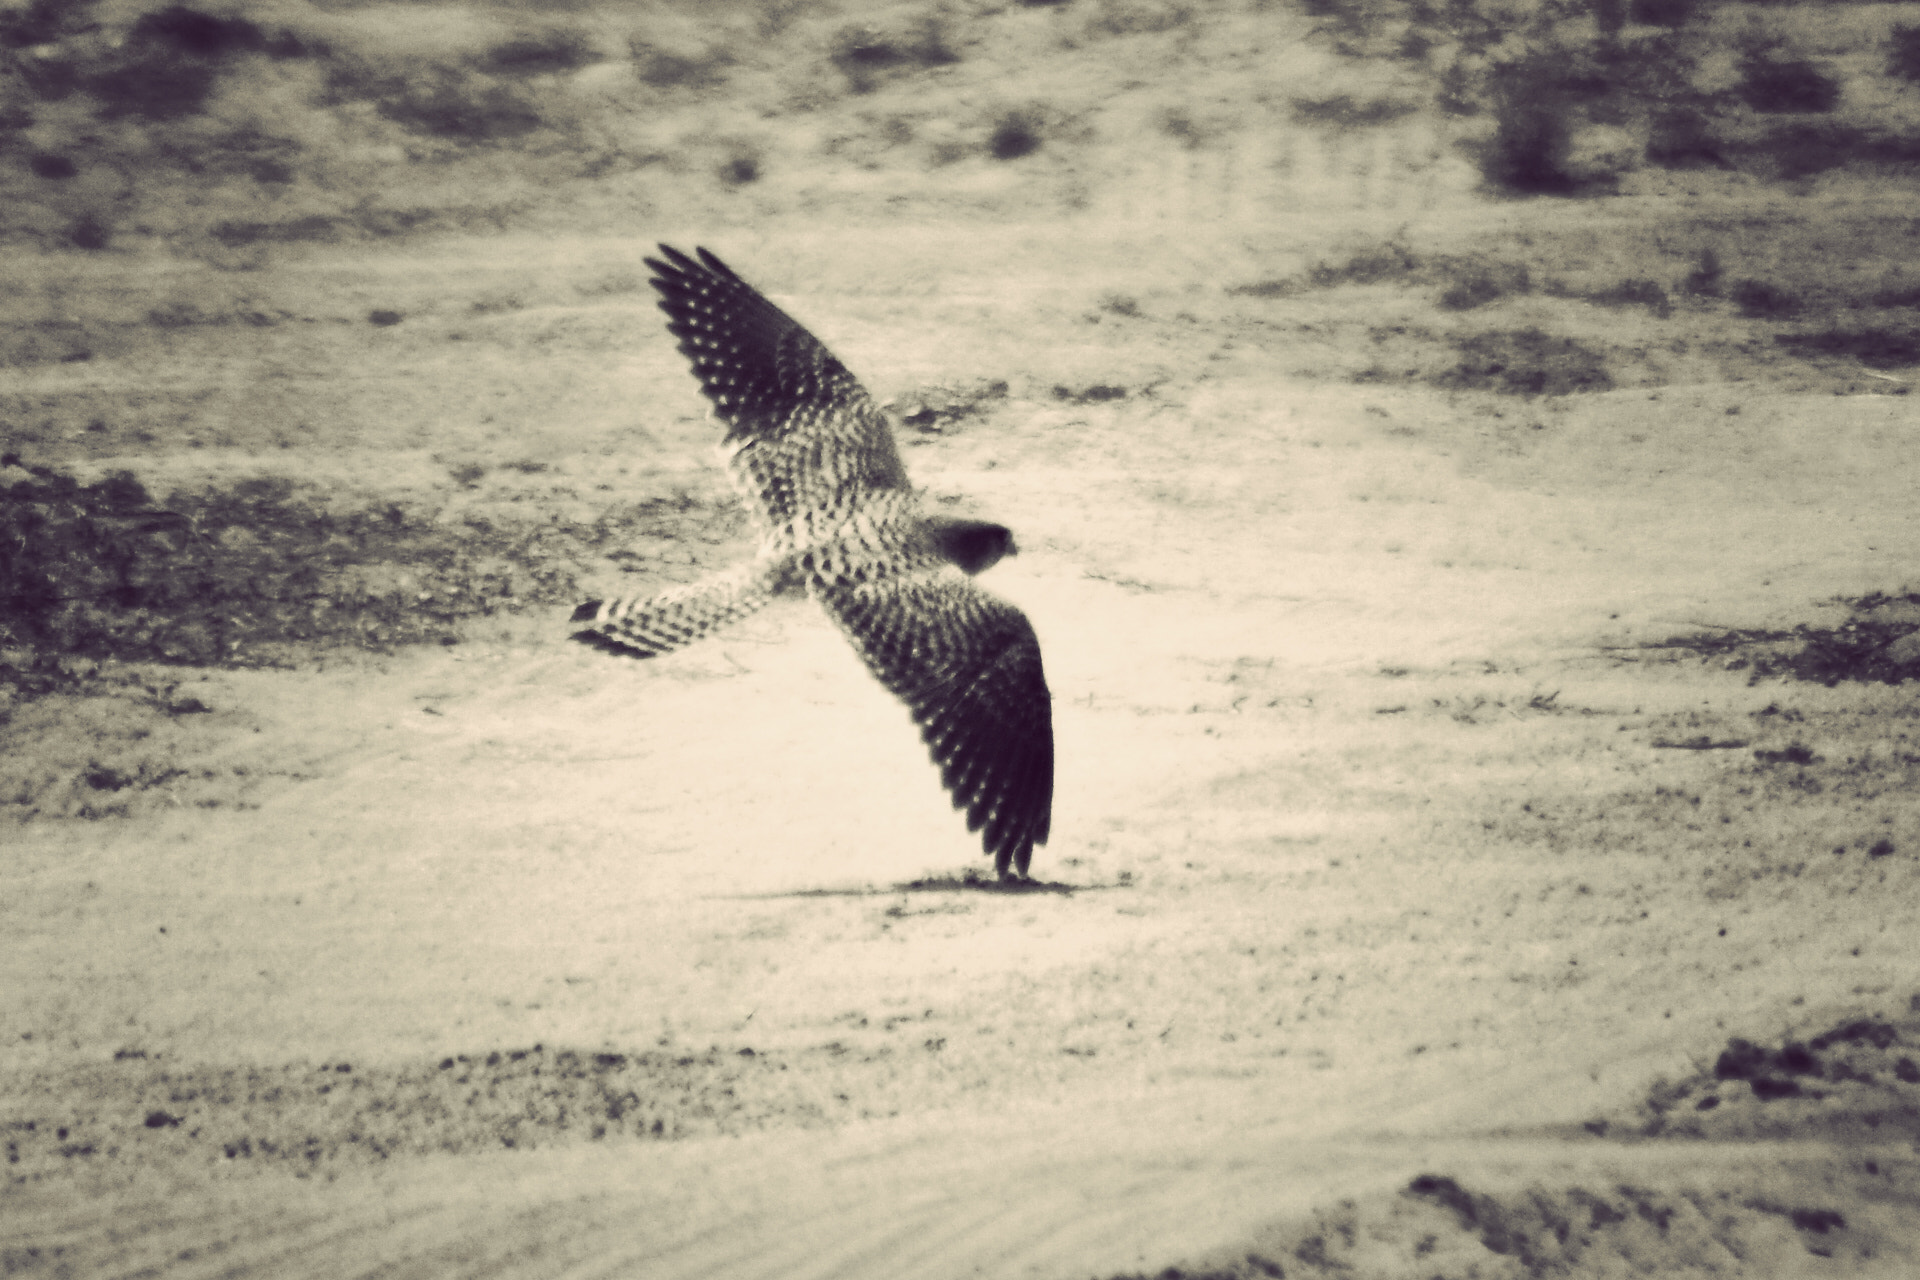 Photograph VERY LOW FLYING by Saud Alrshiad on 500px